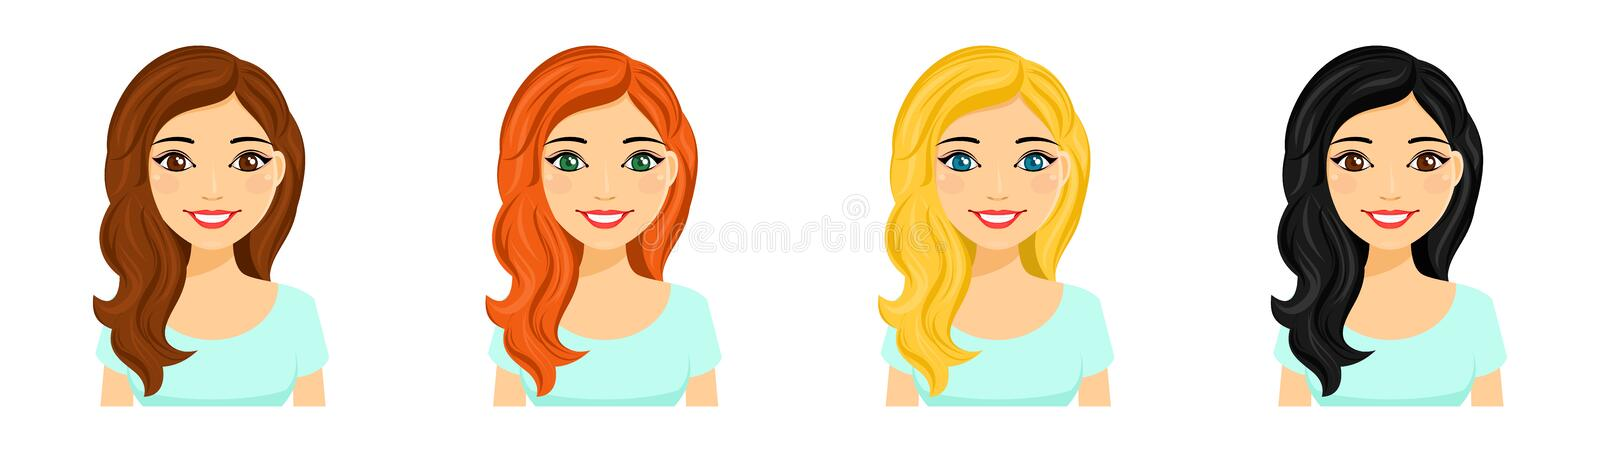 Young girl, set. Portraits of a smiling girl with different hair color stock photos